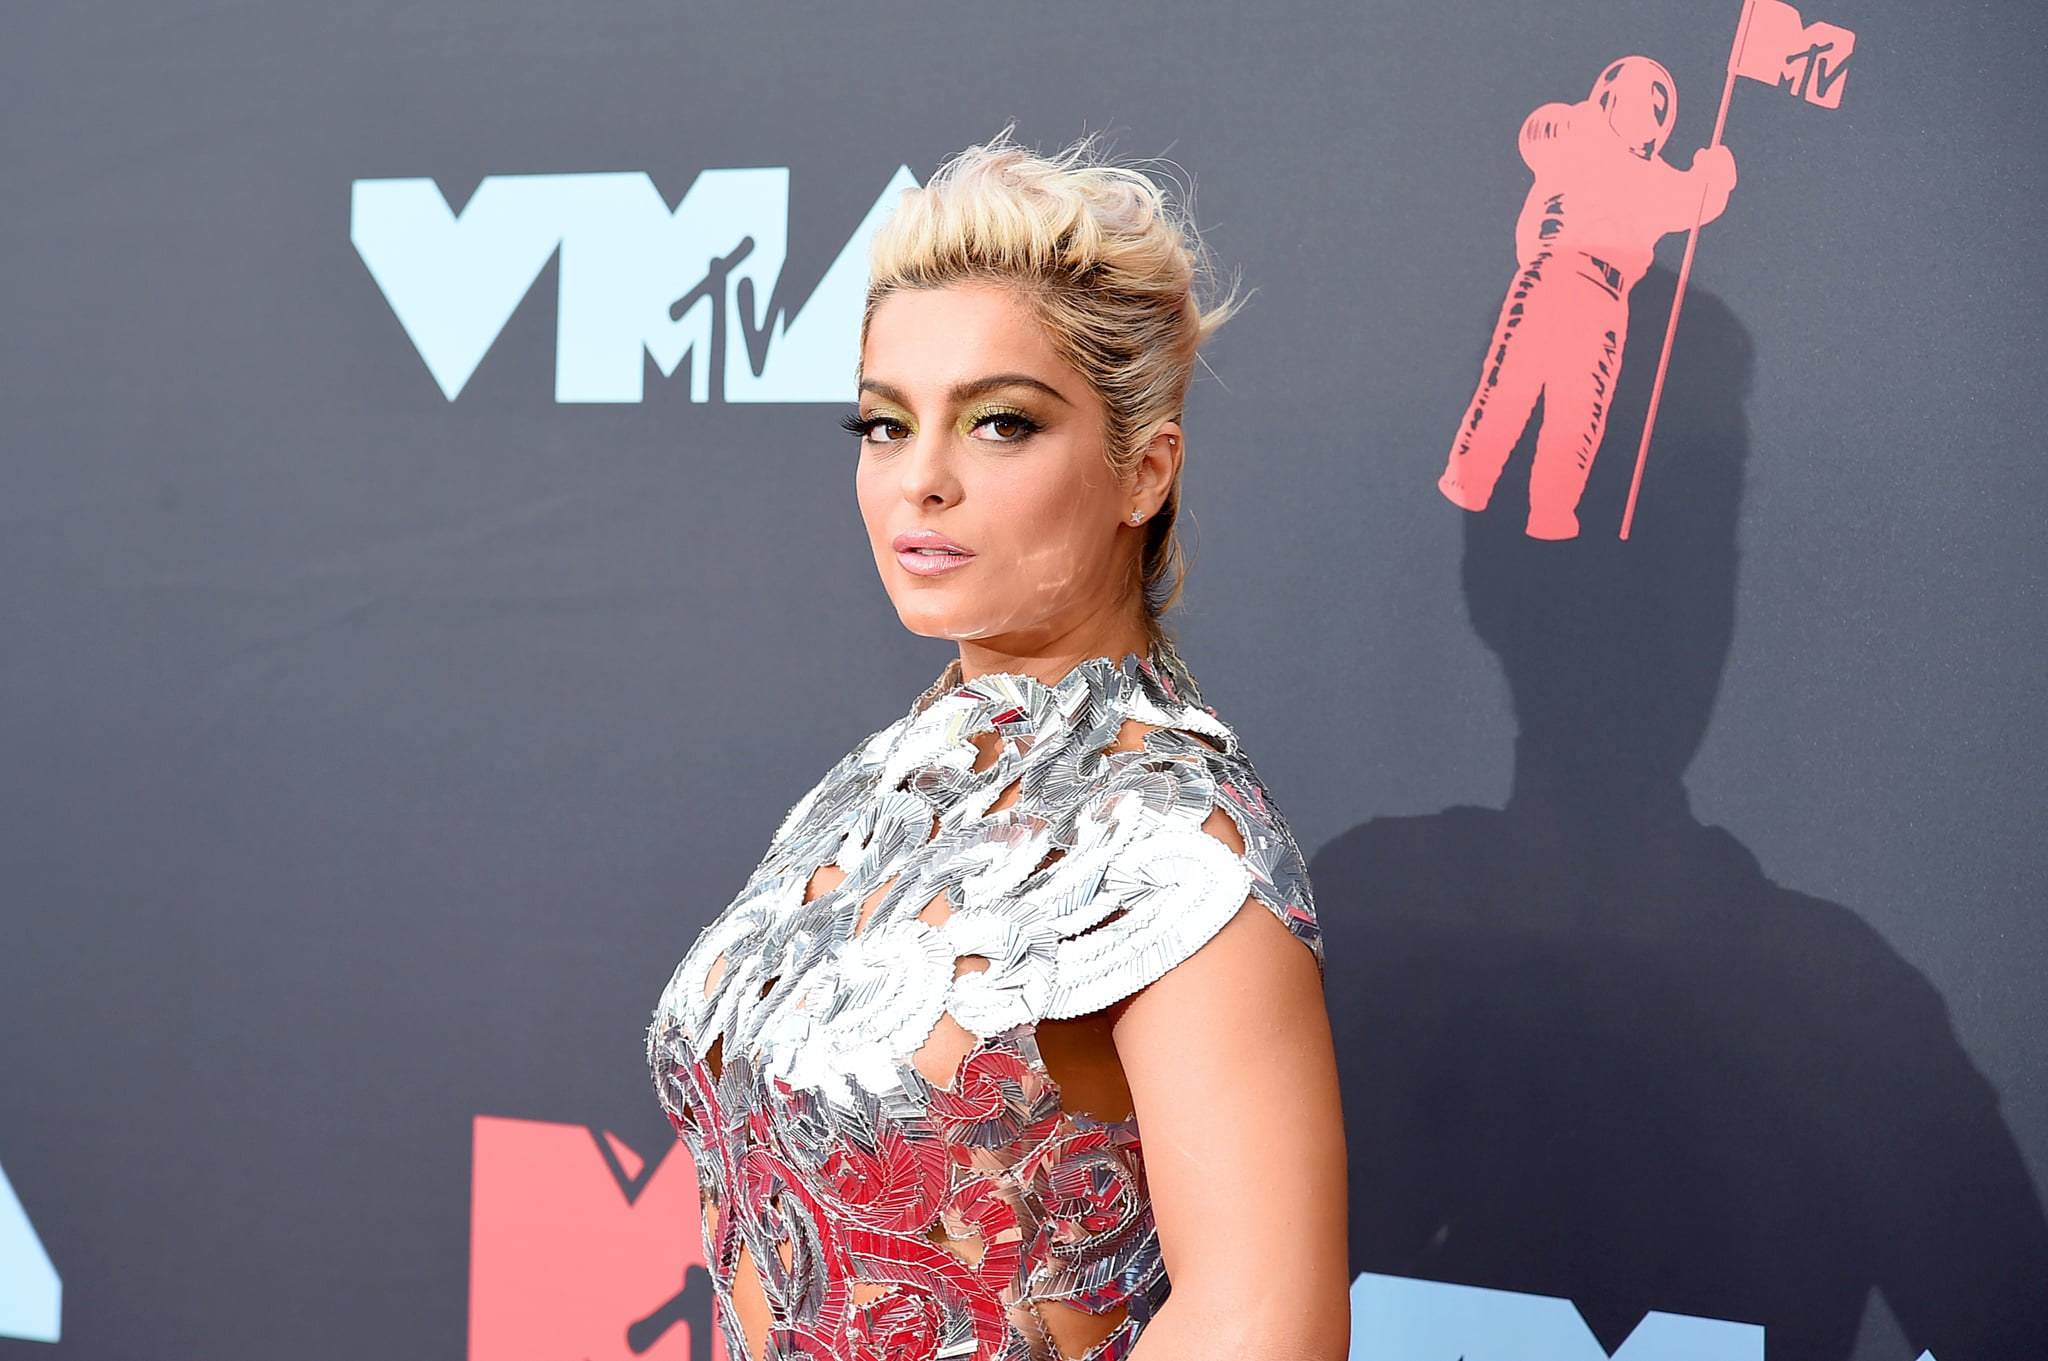 NEWARK, NEW JERSEY - AUGUST 26: Bebe Rexha attends the 2019 MTV Video Music Awards at Prudential Center on August 26, 2019 in Newark, New Jersey. (Photo by Jamie McCarthy/Getty Images for MTV)